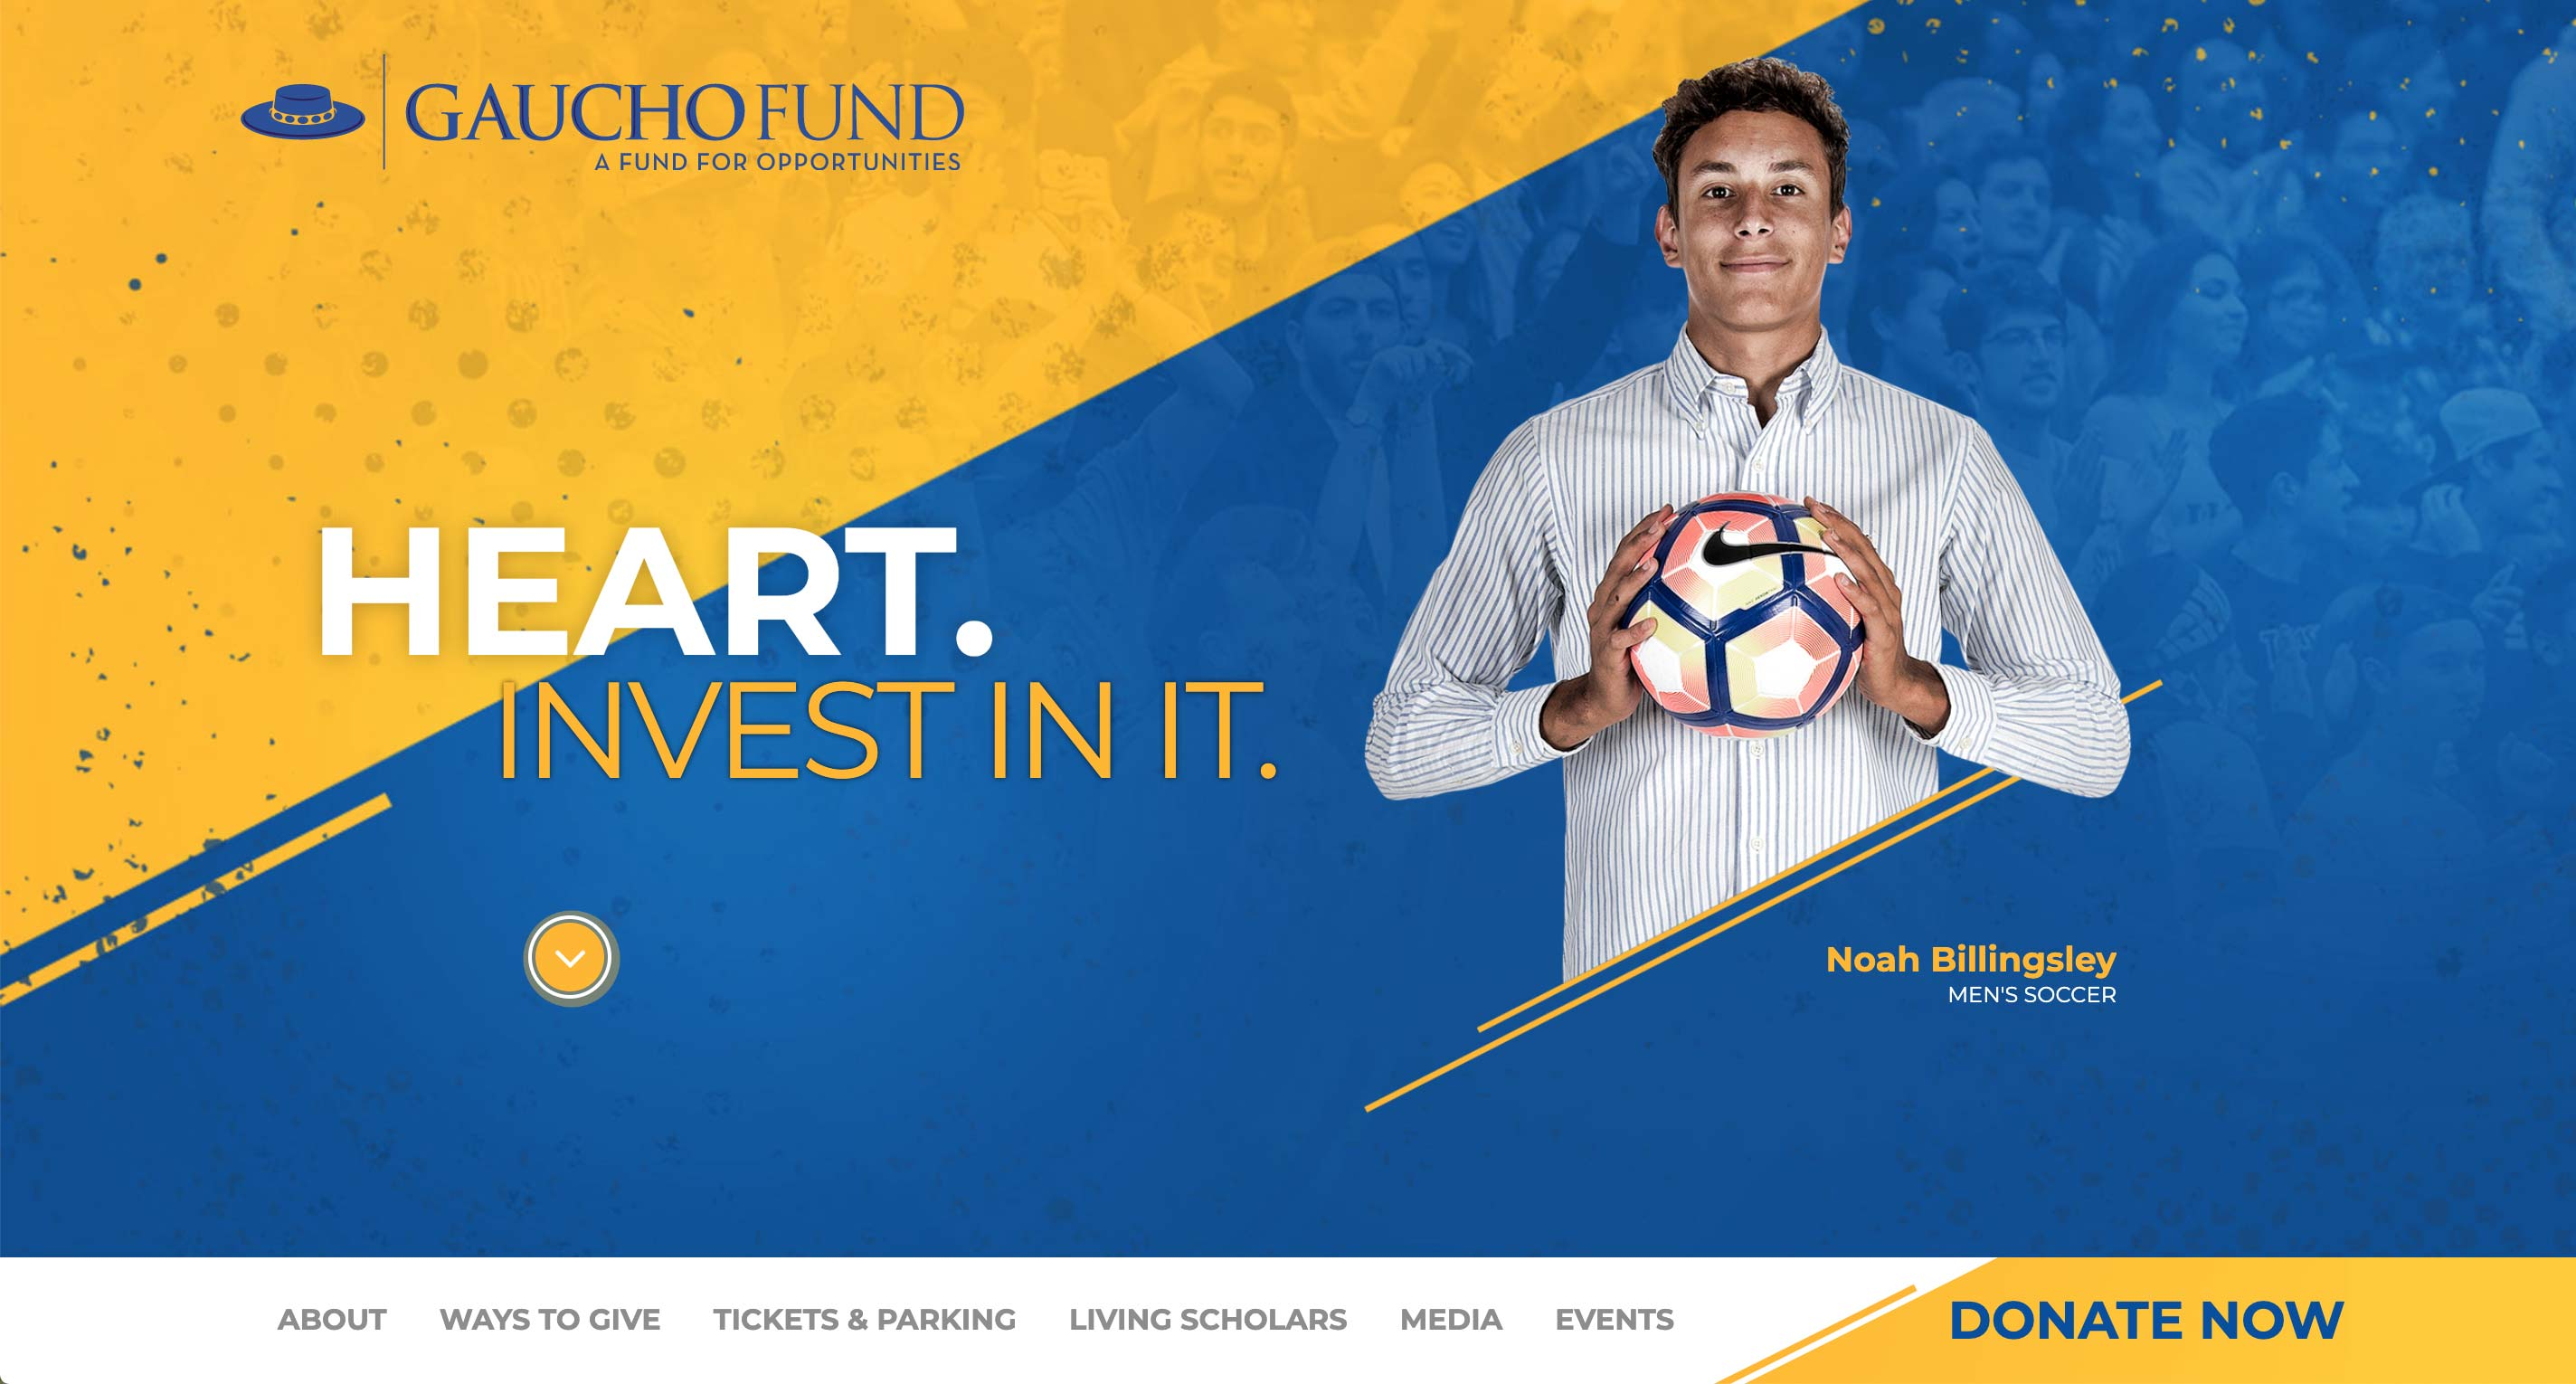 Gaucho Fund Fundraising Website | <a href='http://gauchofund.com/' target='_blank'>Visit Site <i class='nc-icon-glyph arrows-1_share-91'></i></a><br><span>University of California, Santa Barbara</span>